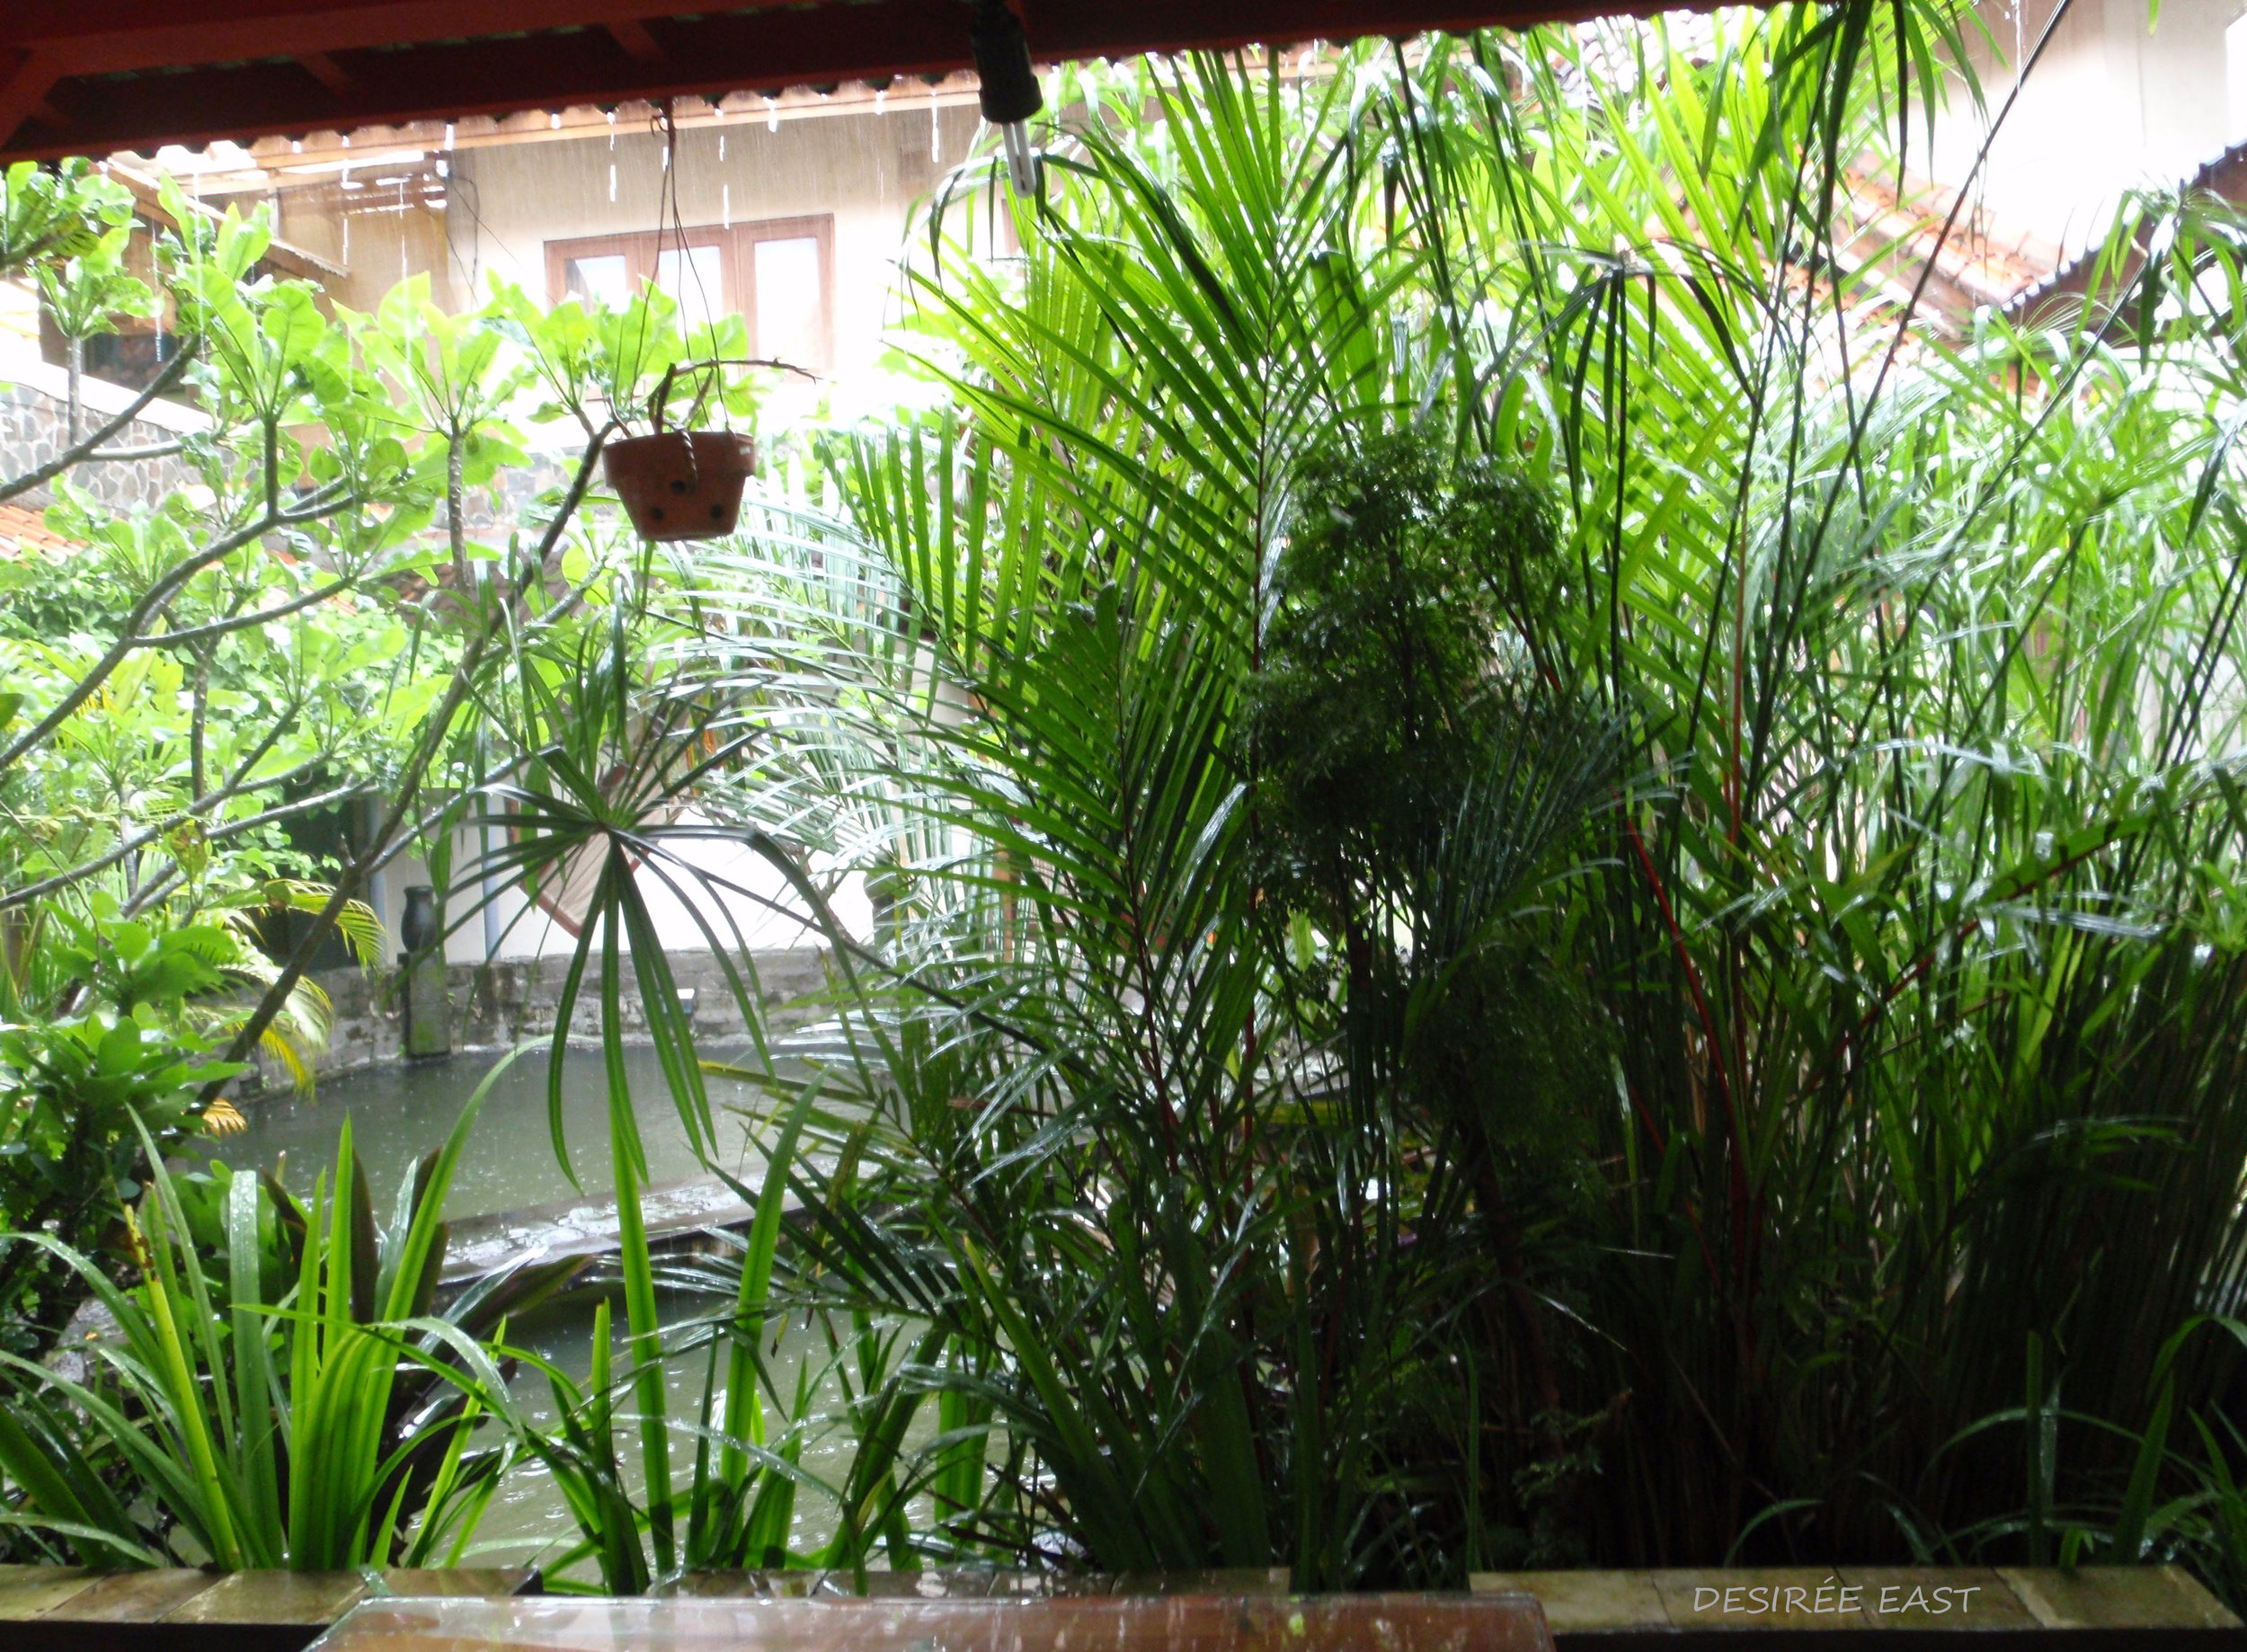 plants near the pond. andree homestay. bali, indonesia. photo by desiree east